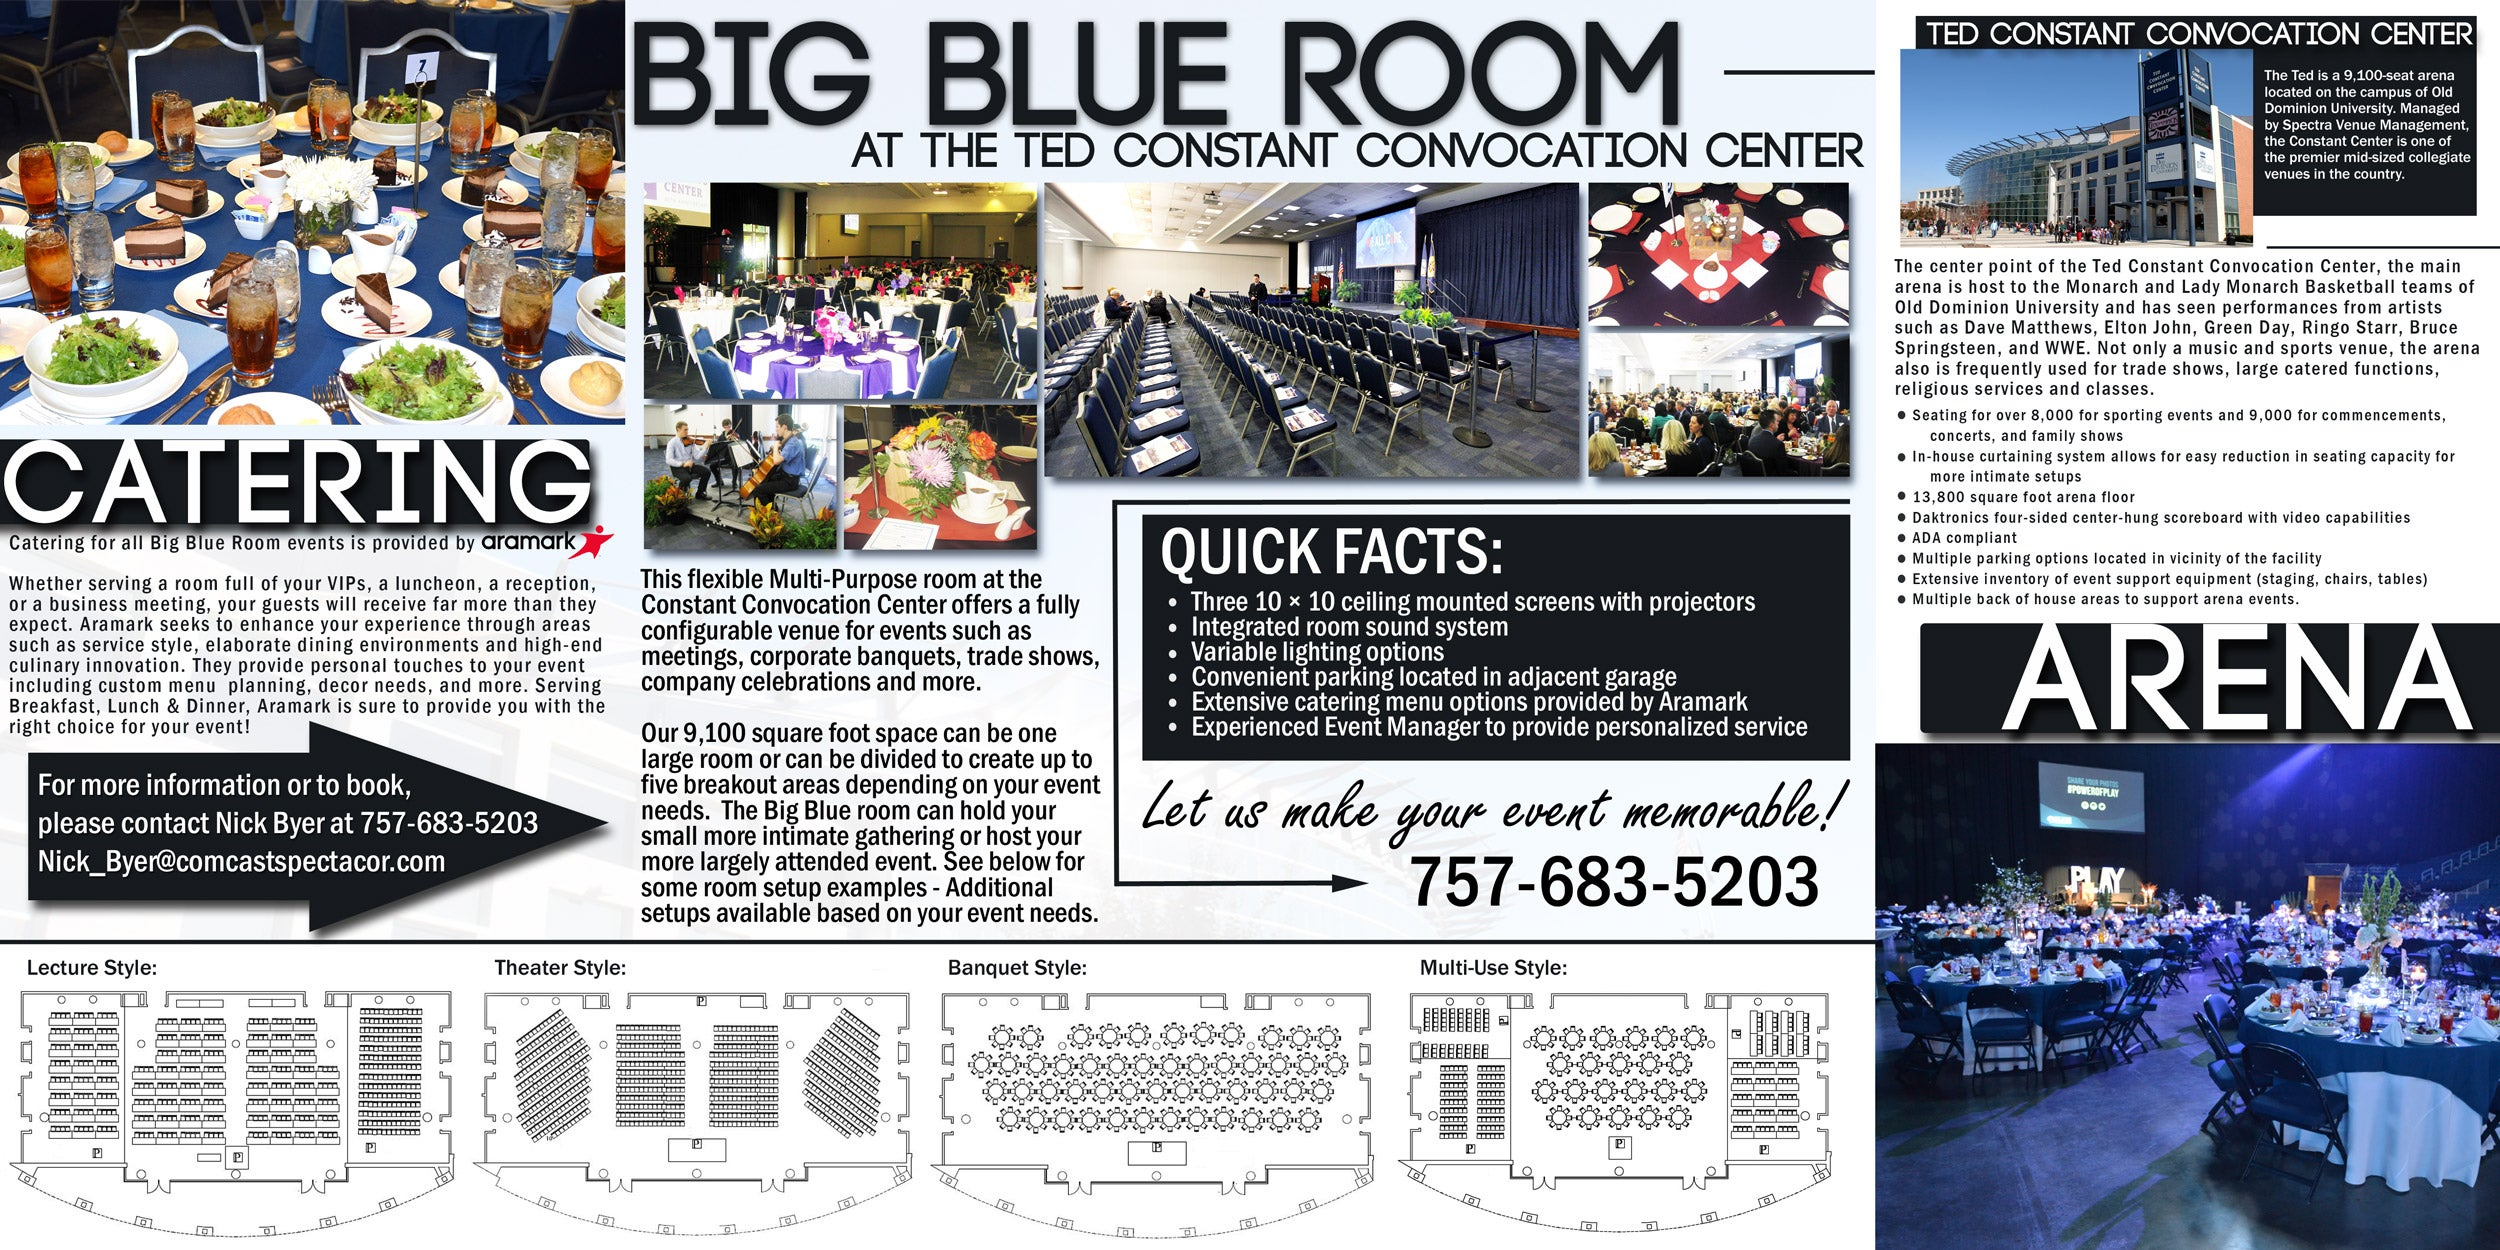 Ted Constant Convocation Center Big Blue Room